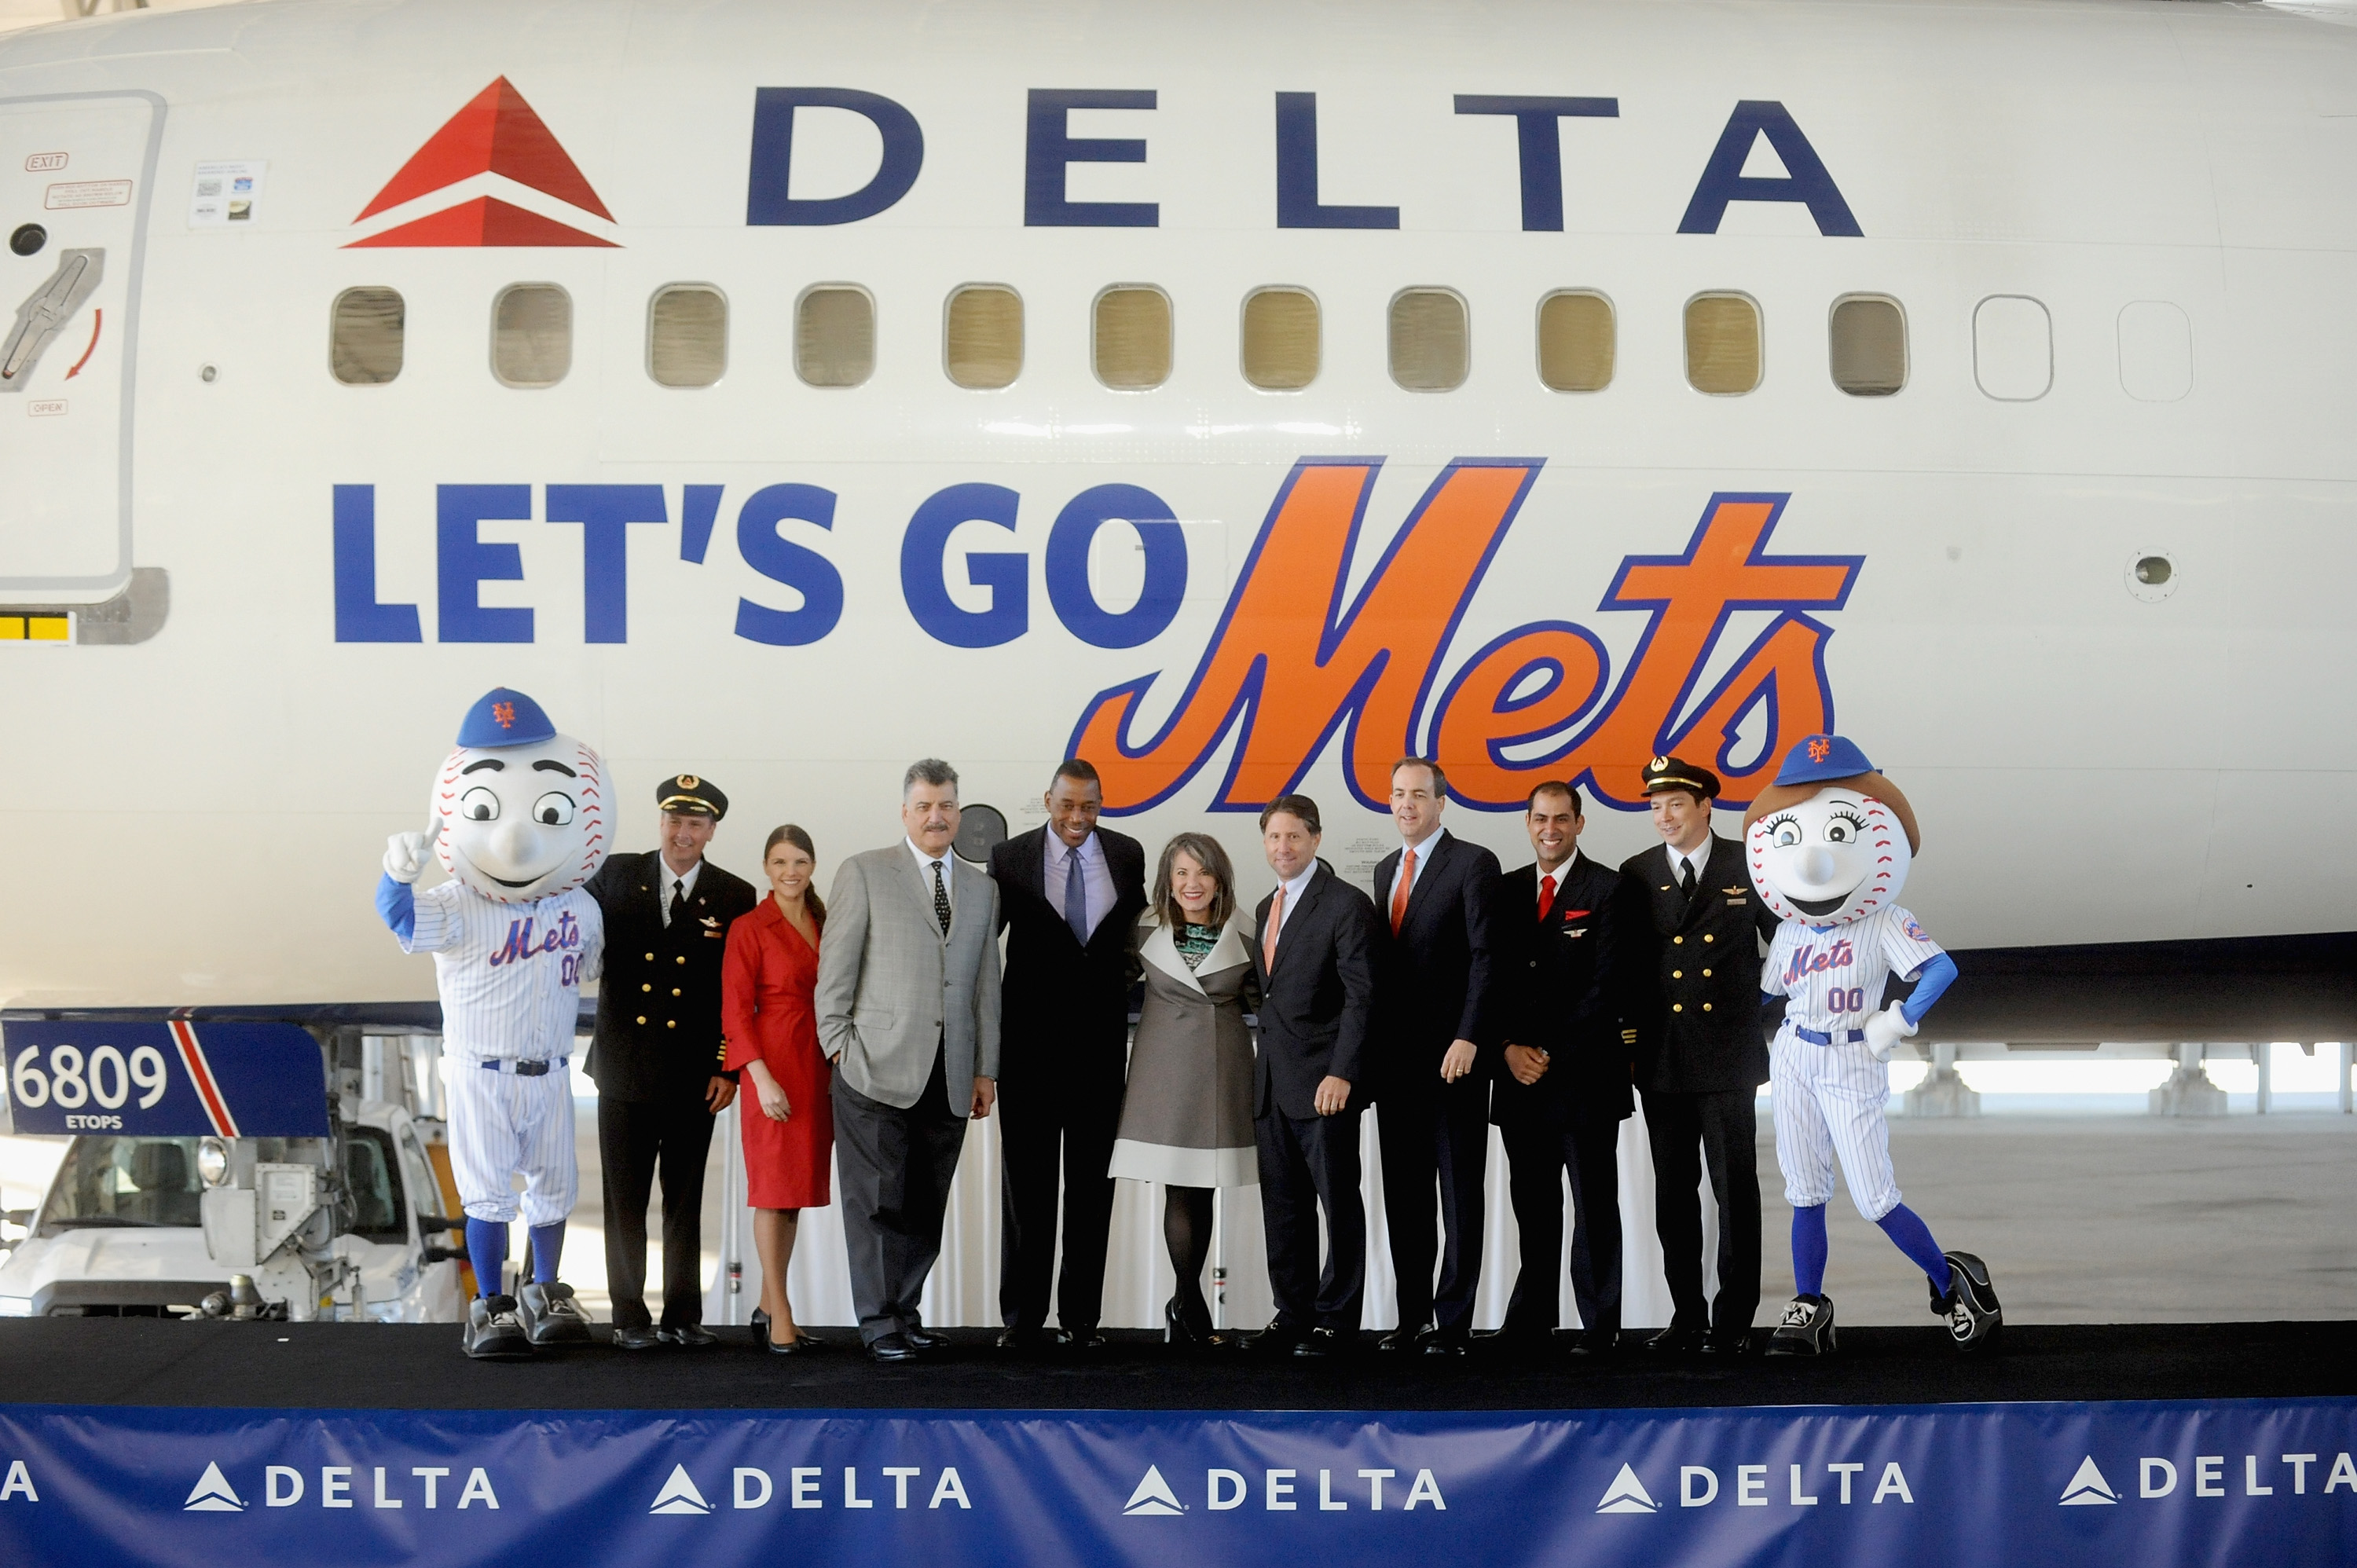 Group of People standing in front of Met's plane